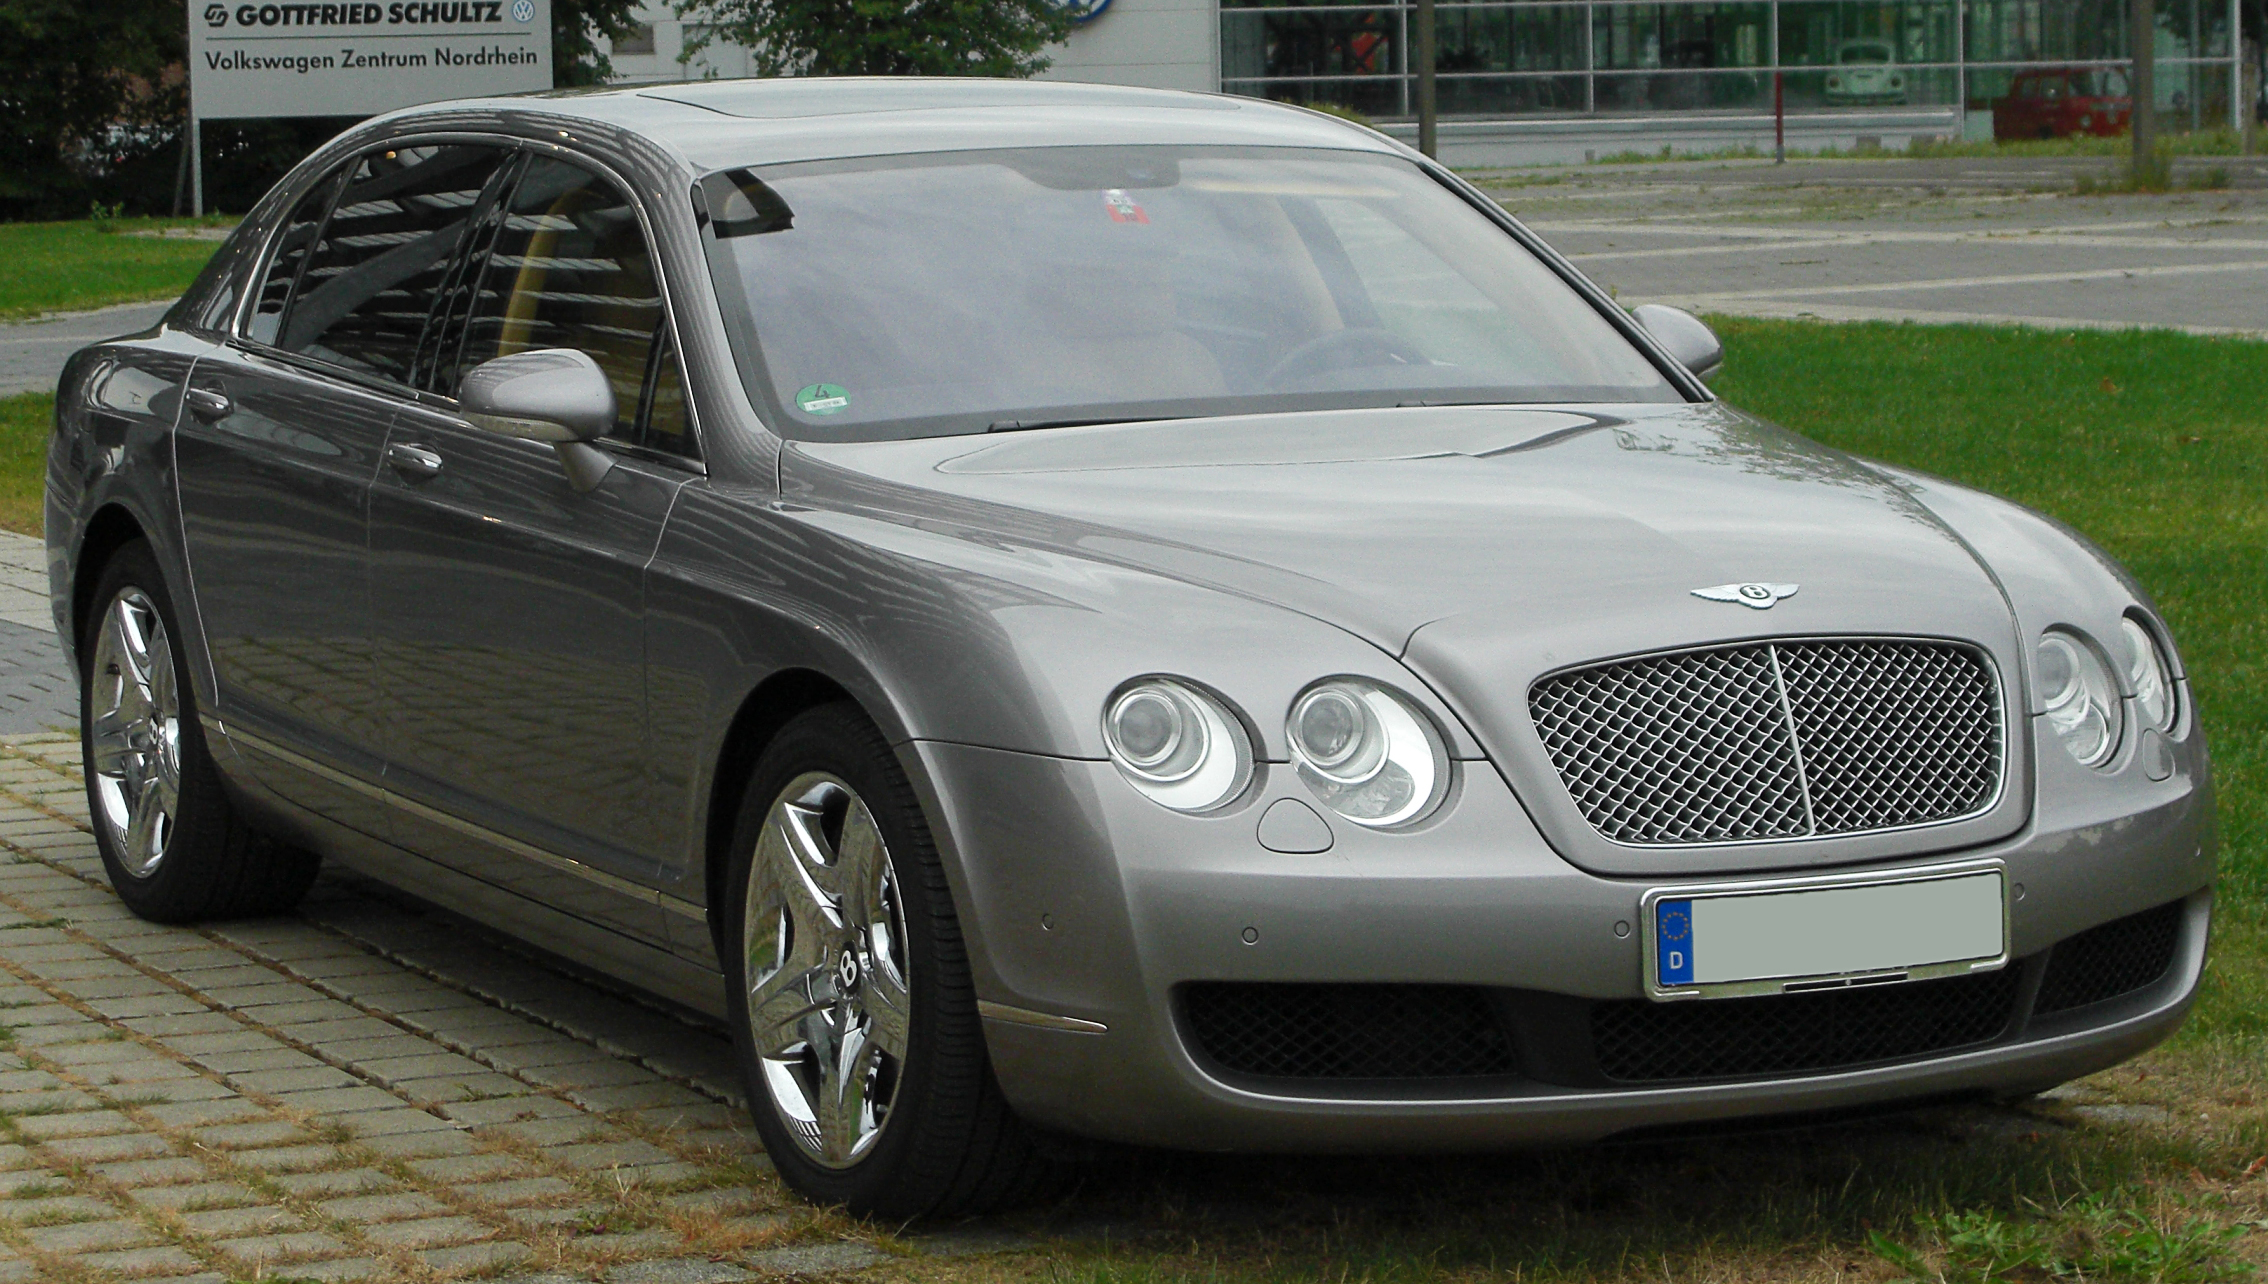 bentley continental flying spur, 2005 г